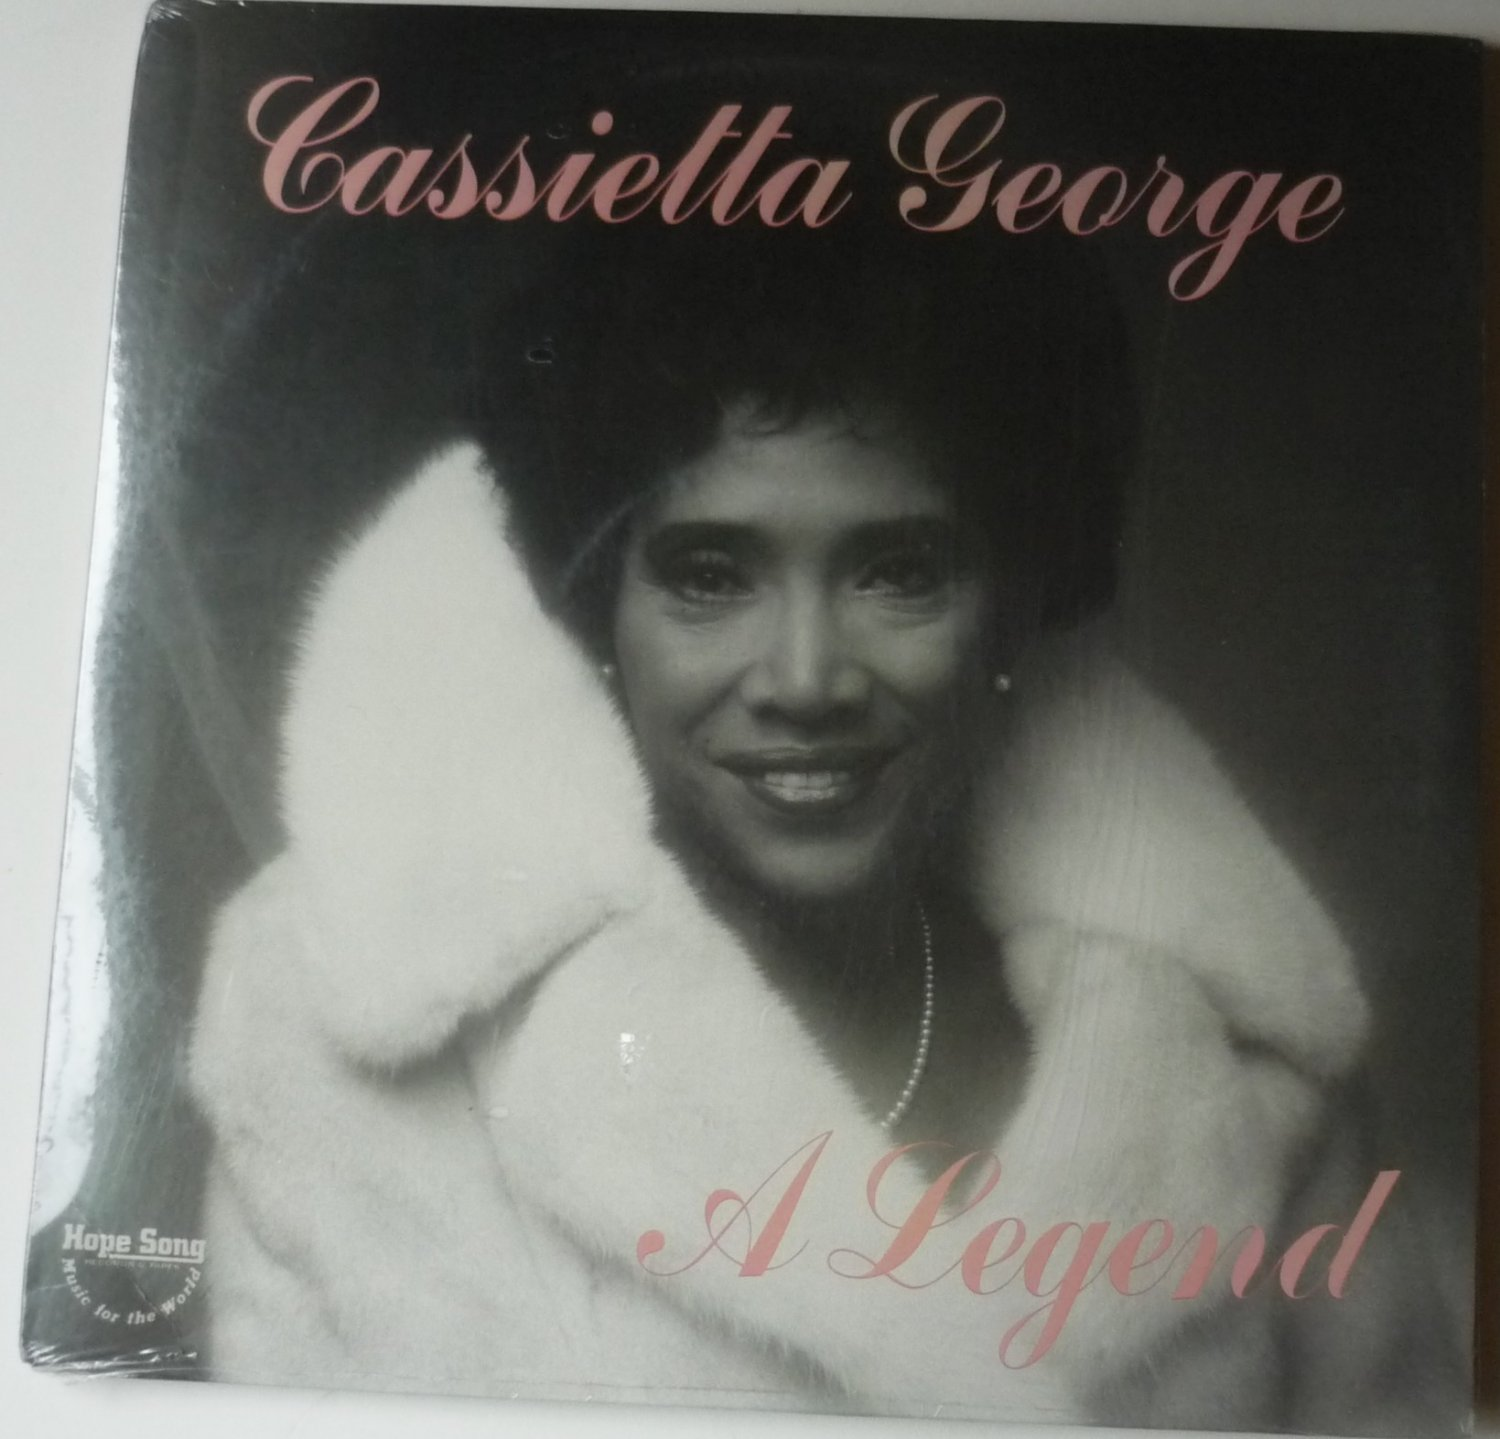 A Legend lp by Cassietta George - New Sealed